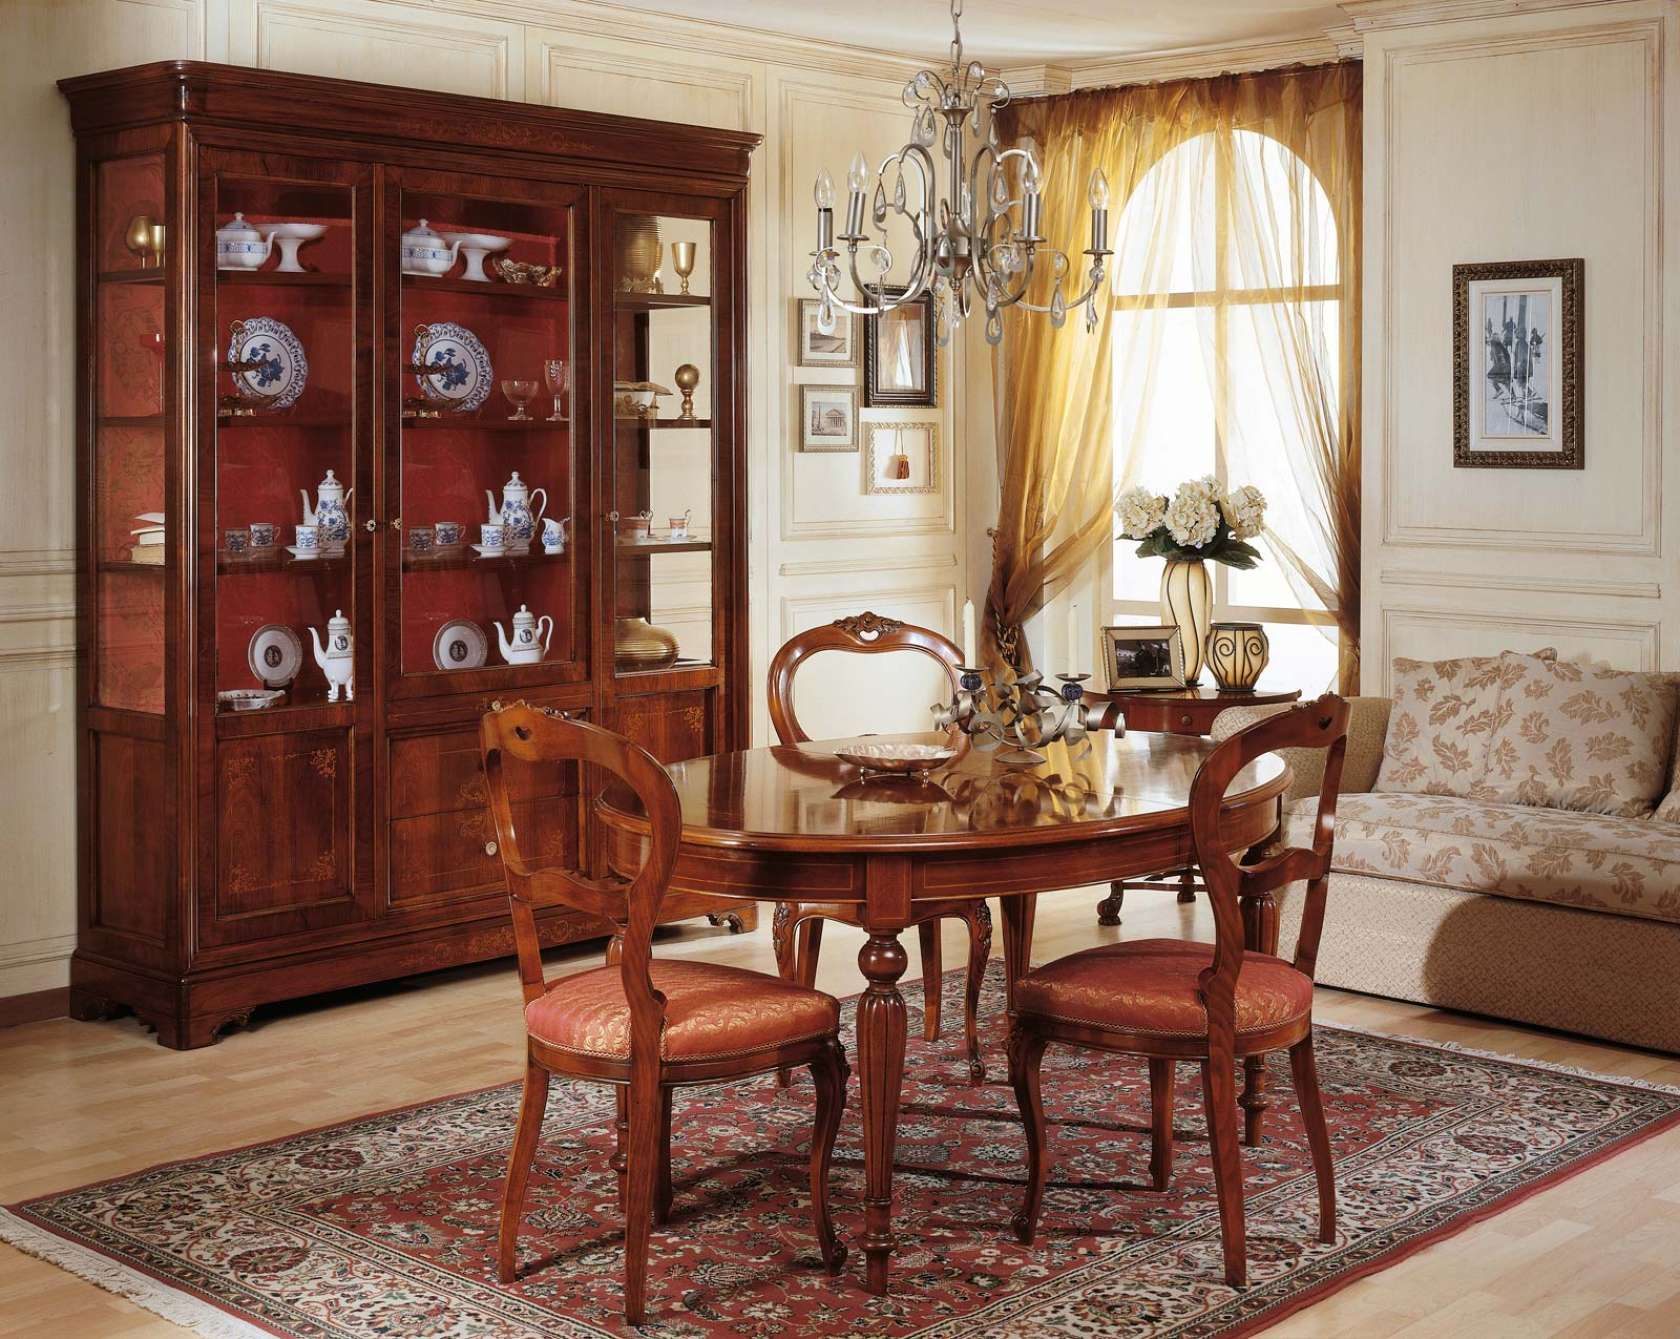 Meuble Demi Lune Dining Room French 19th Century, Table And Glass Showcase